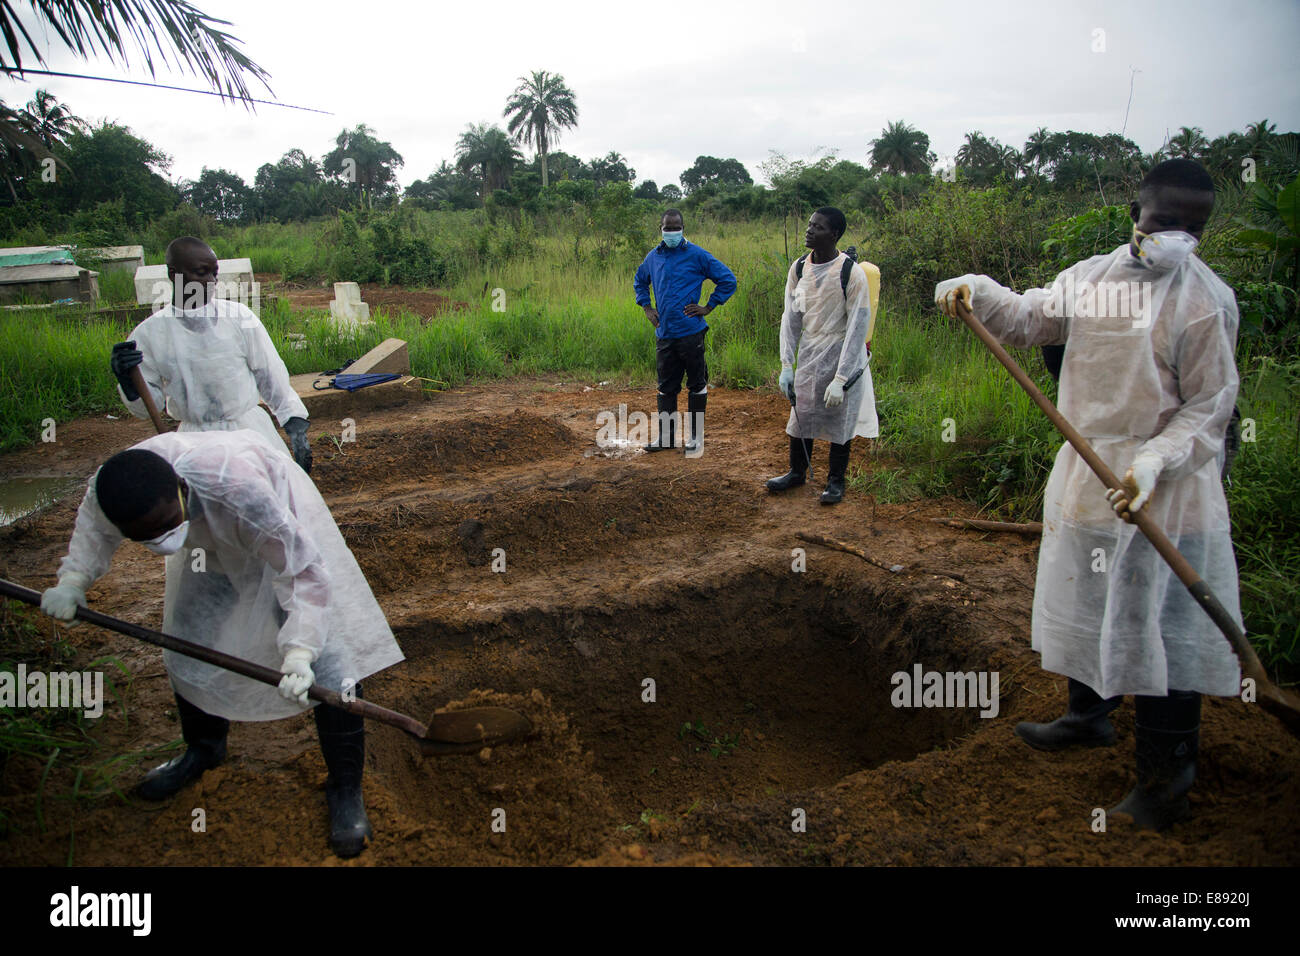 Burial team works to bury another victim of Ebola. Unification Town, Liberia. Aug 30, 2014 - Stock Image